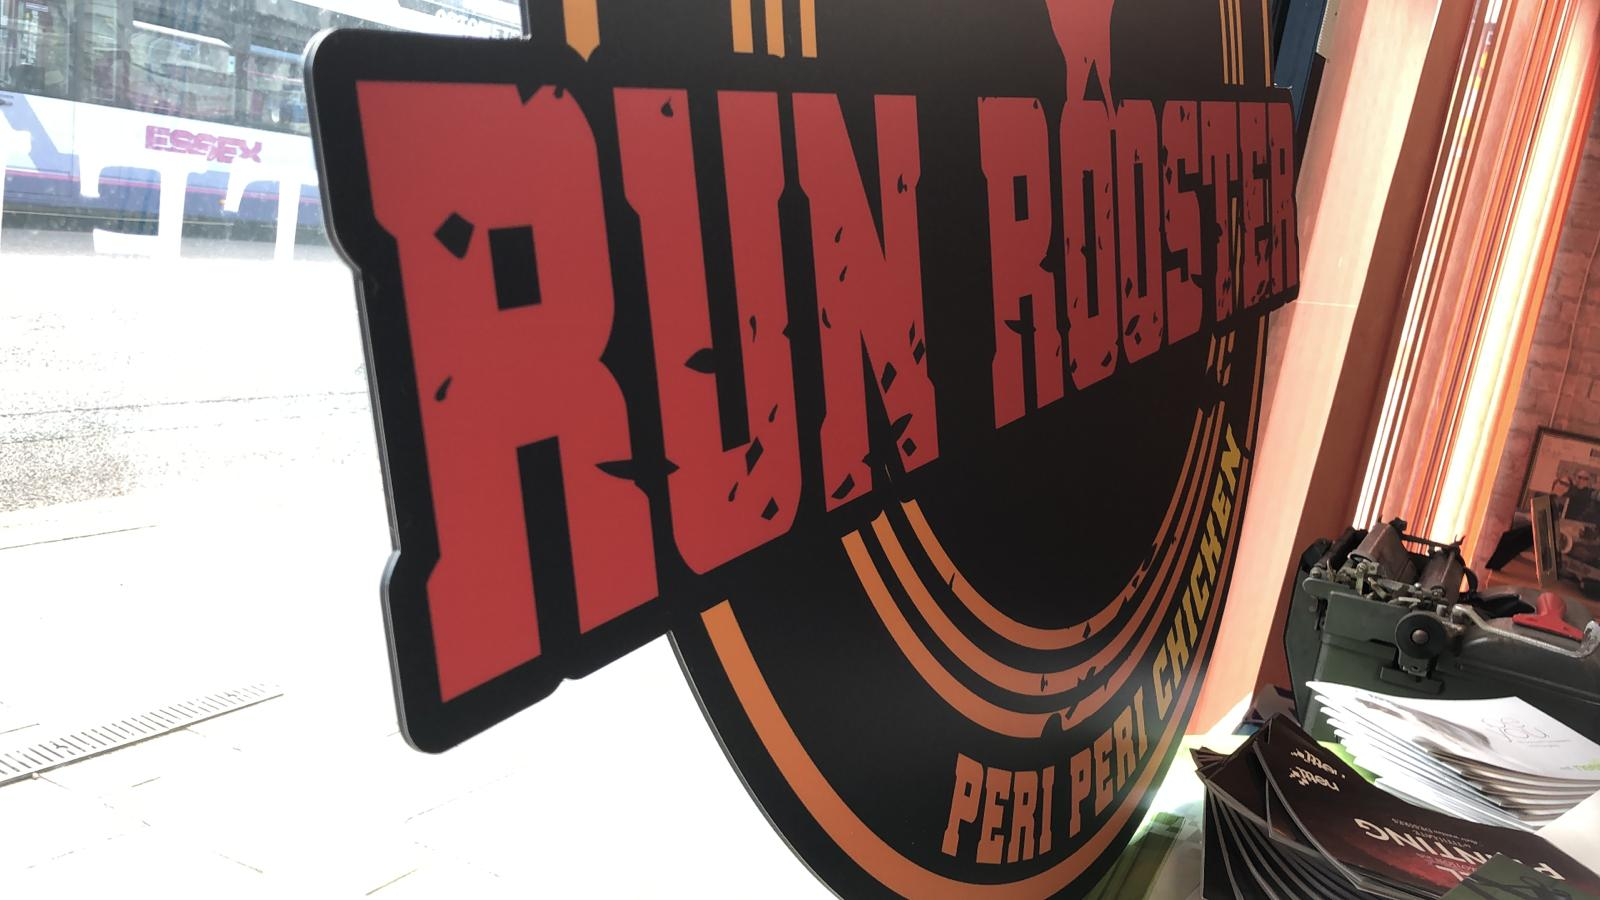 Run rooster shop sign